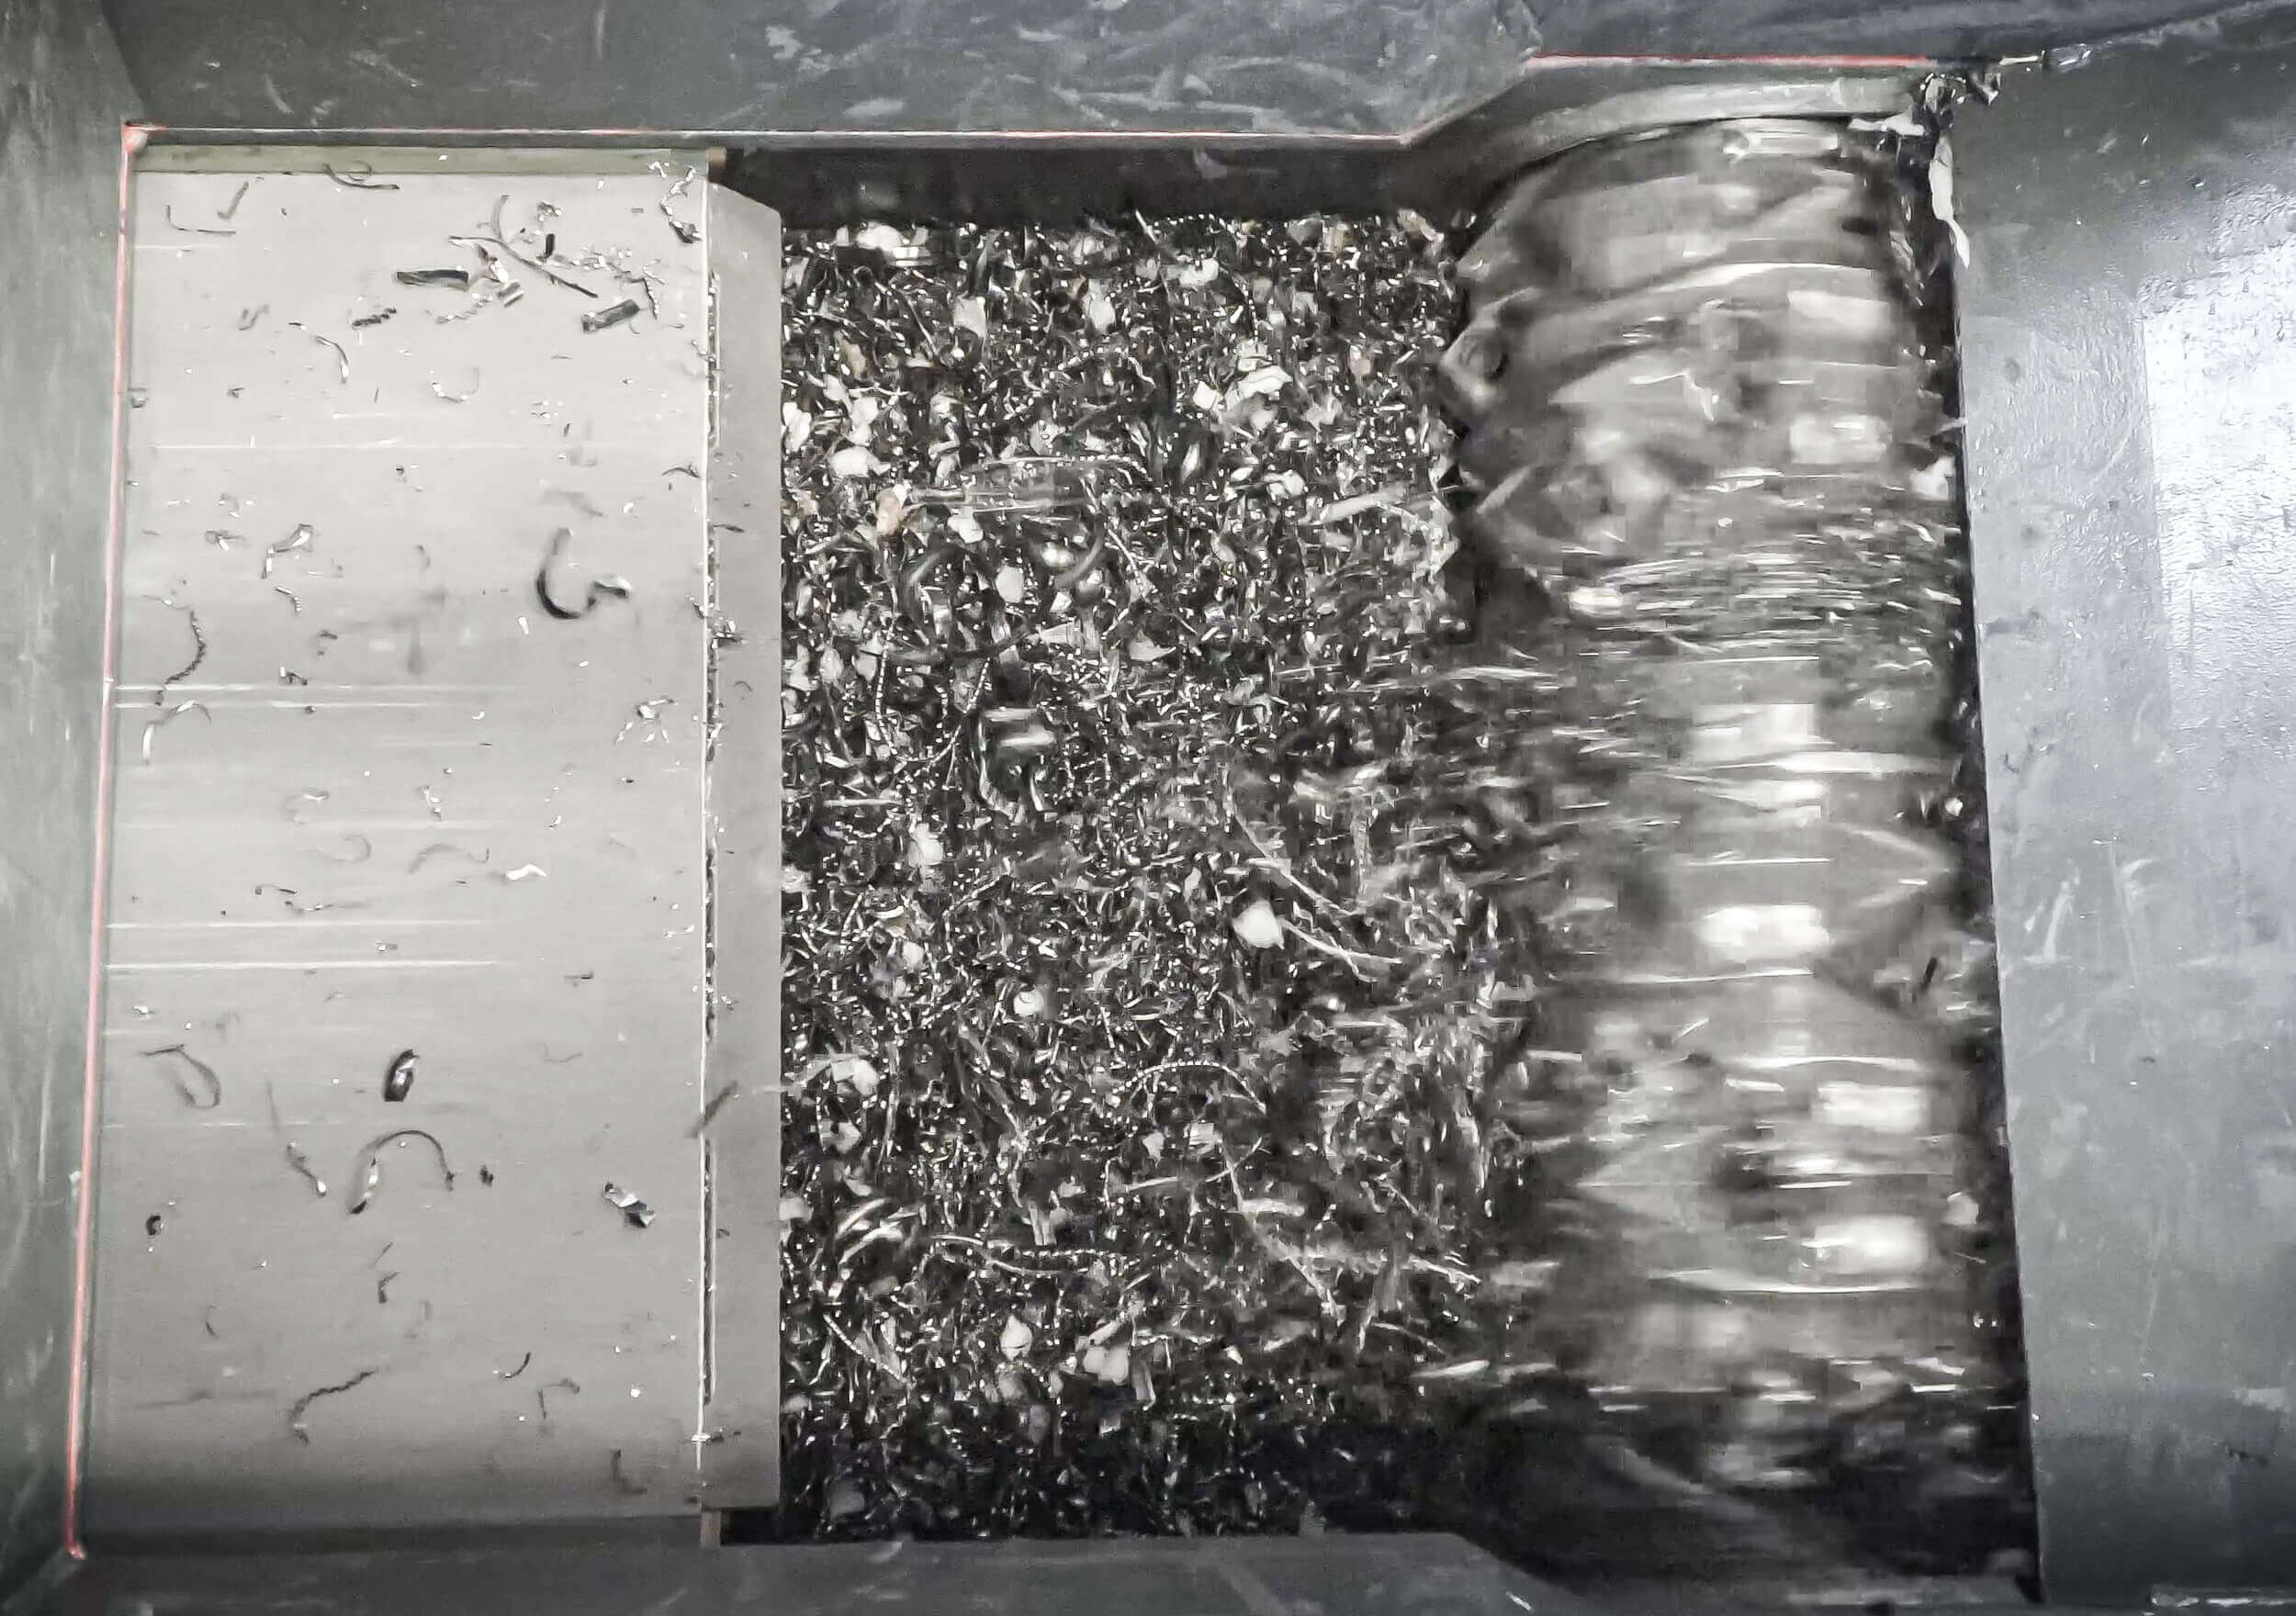 Shavings in the cutting chamber of the WEIMA shredder